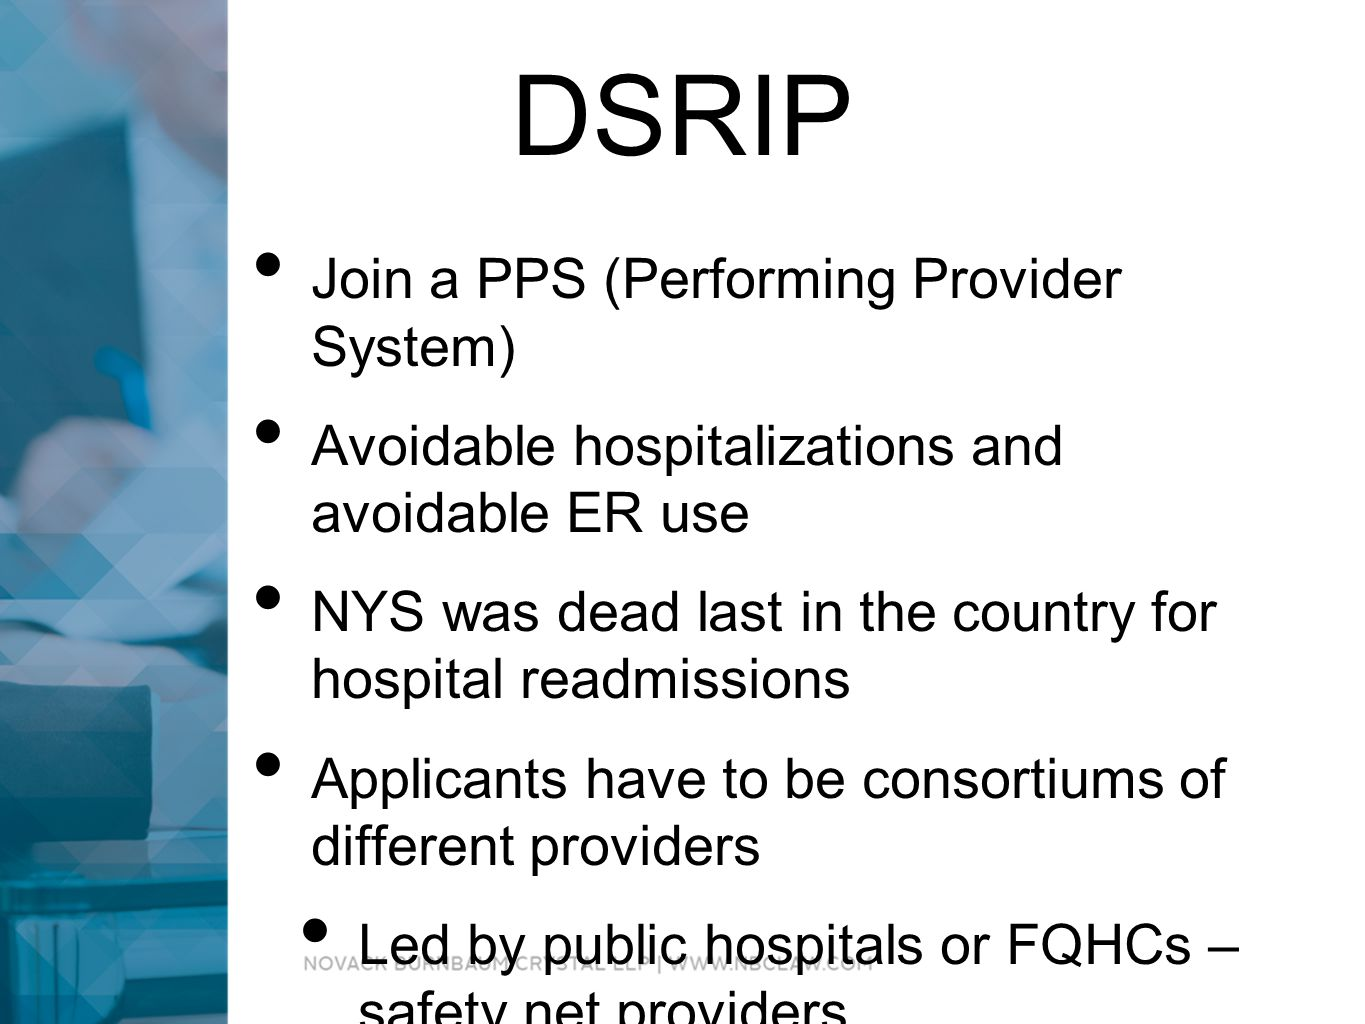 DSRIP Join a PPS (Performing Provider System) Avoidable hospitalizations and avoidable ER use NYS was dead last in the country for hospital readmissions Applicants have to be consortiums of different providers Led by public hospitals or FQHCs – safety net providers